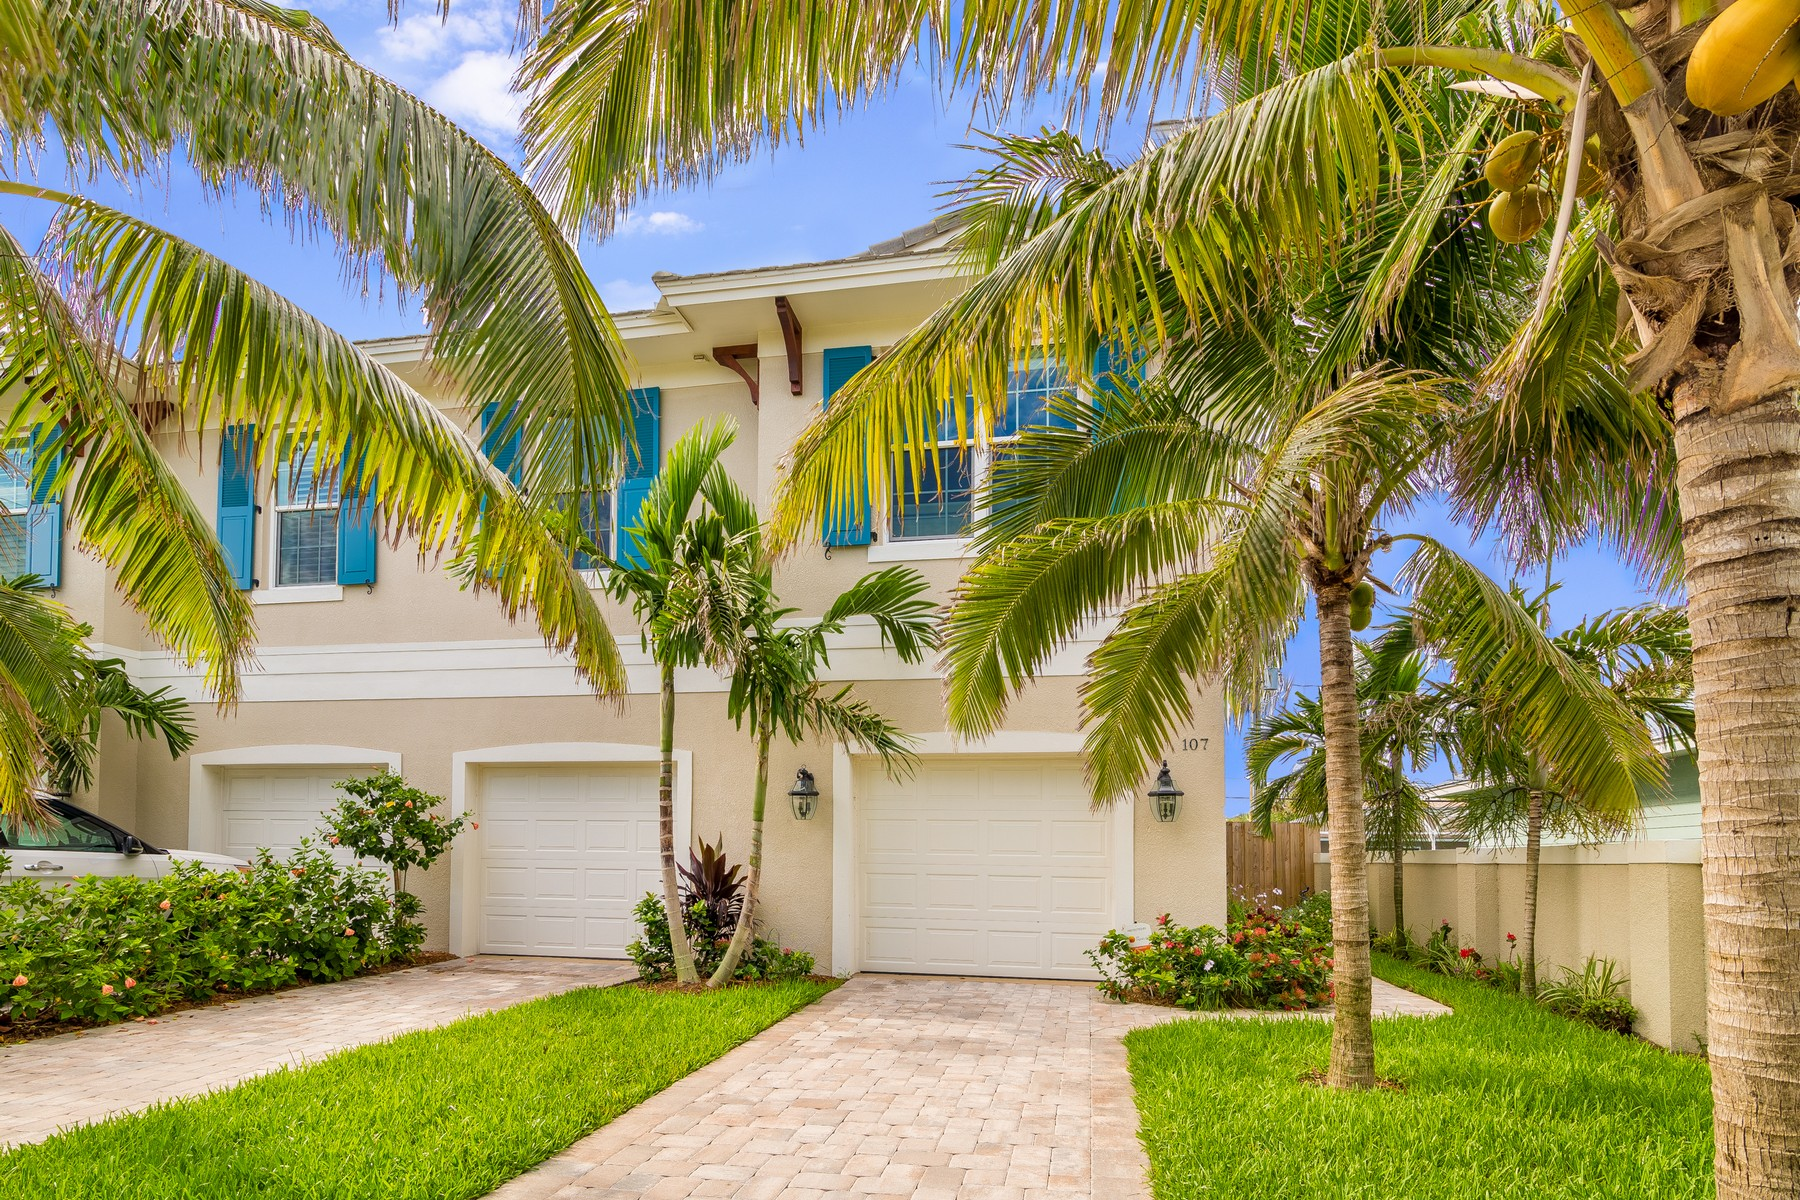 Single Family Home for Sale at 107 Seventh Avenue Indialantic, Florida 32903 United States